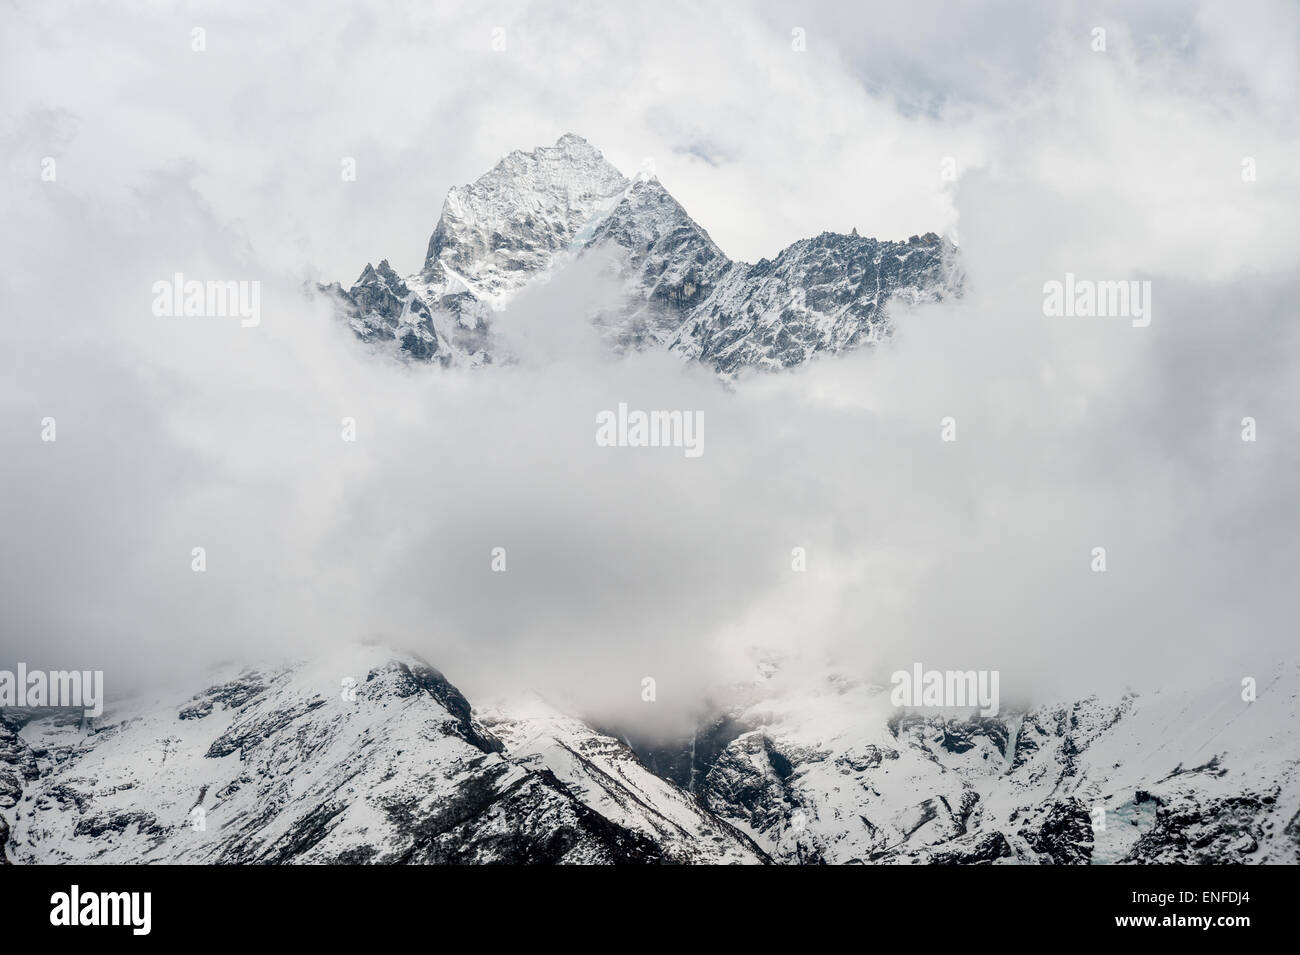 Himalayan summit emerging from the clouds in Nepal - Stock Image